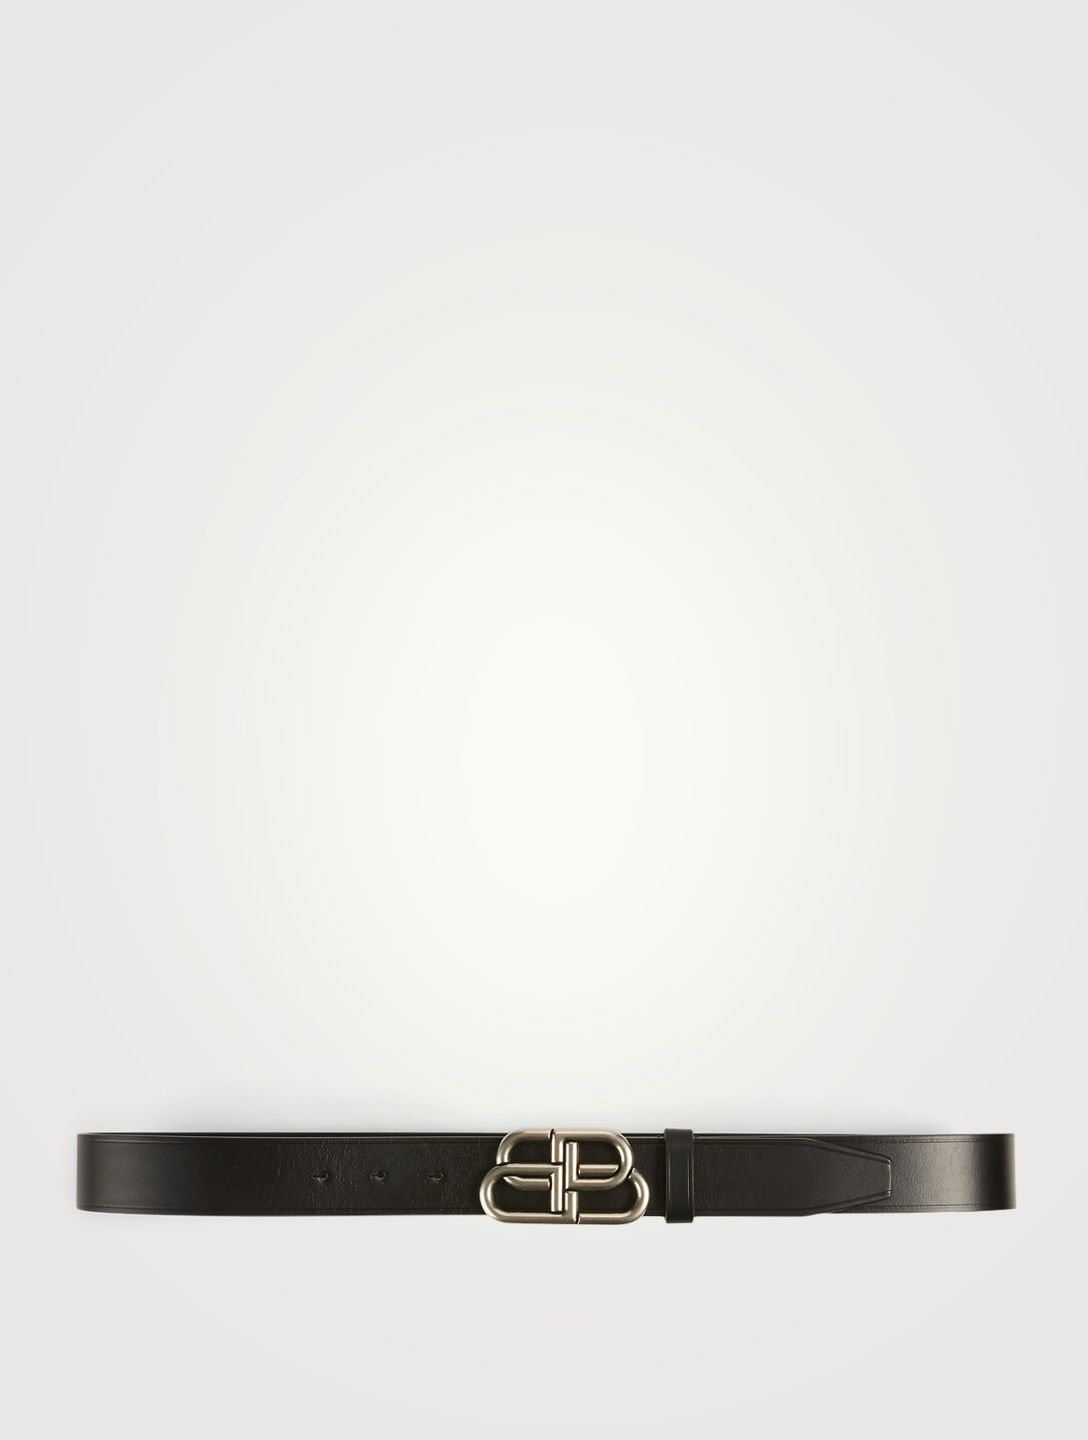 BALENCIAGA Leather Belt With Logo Buckle Men's Black